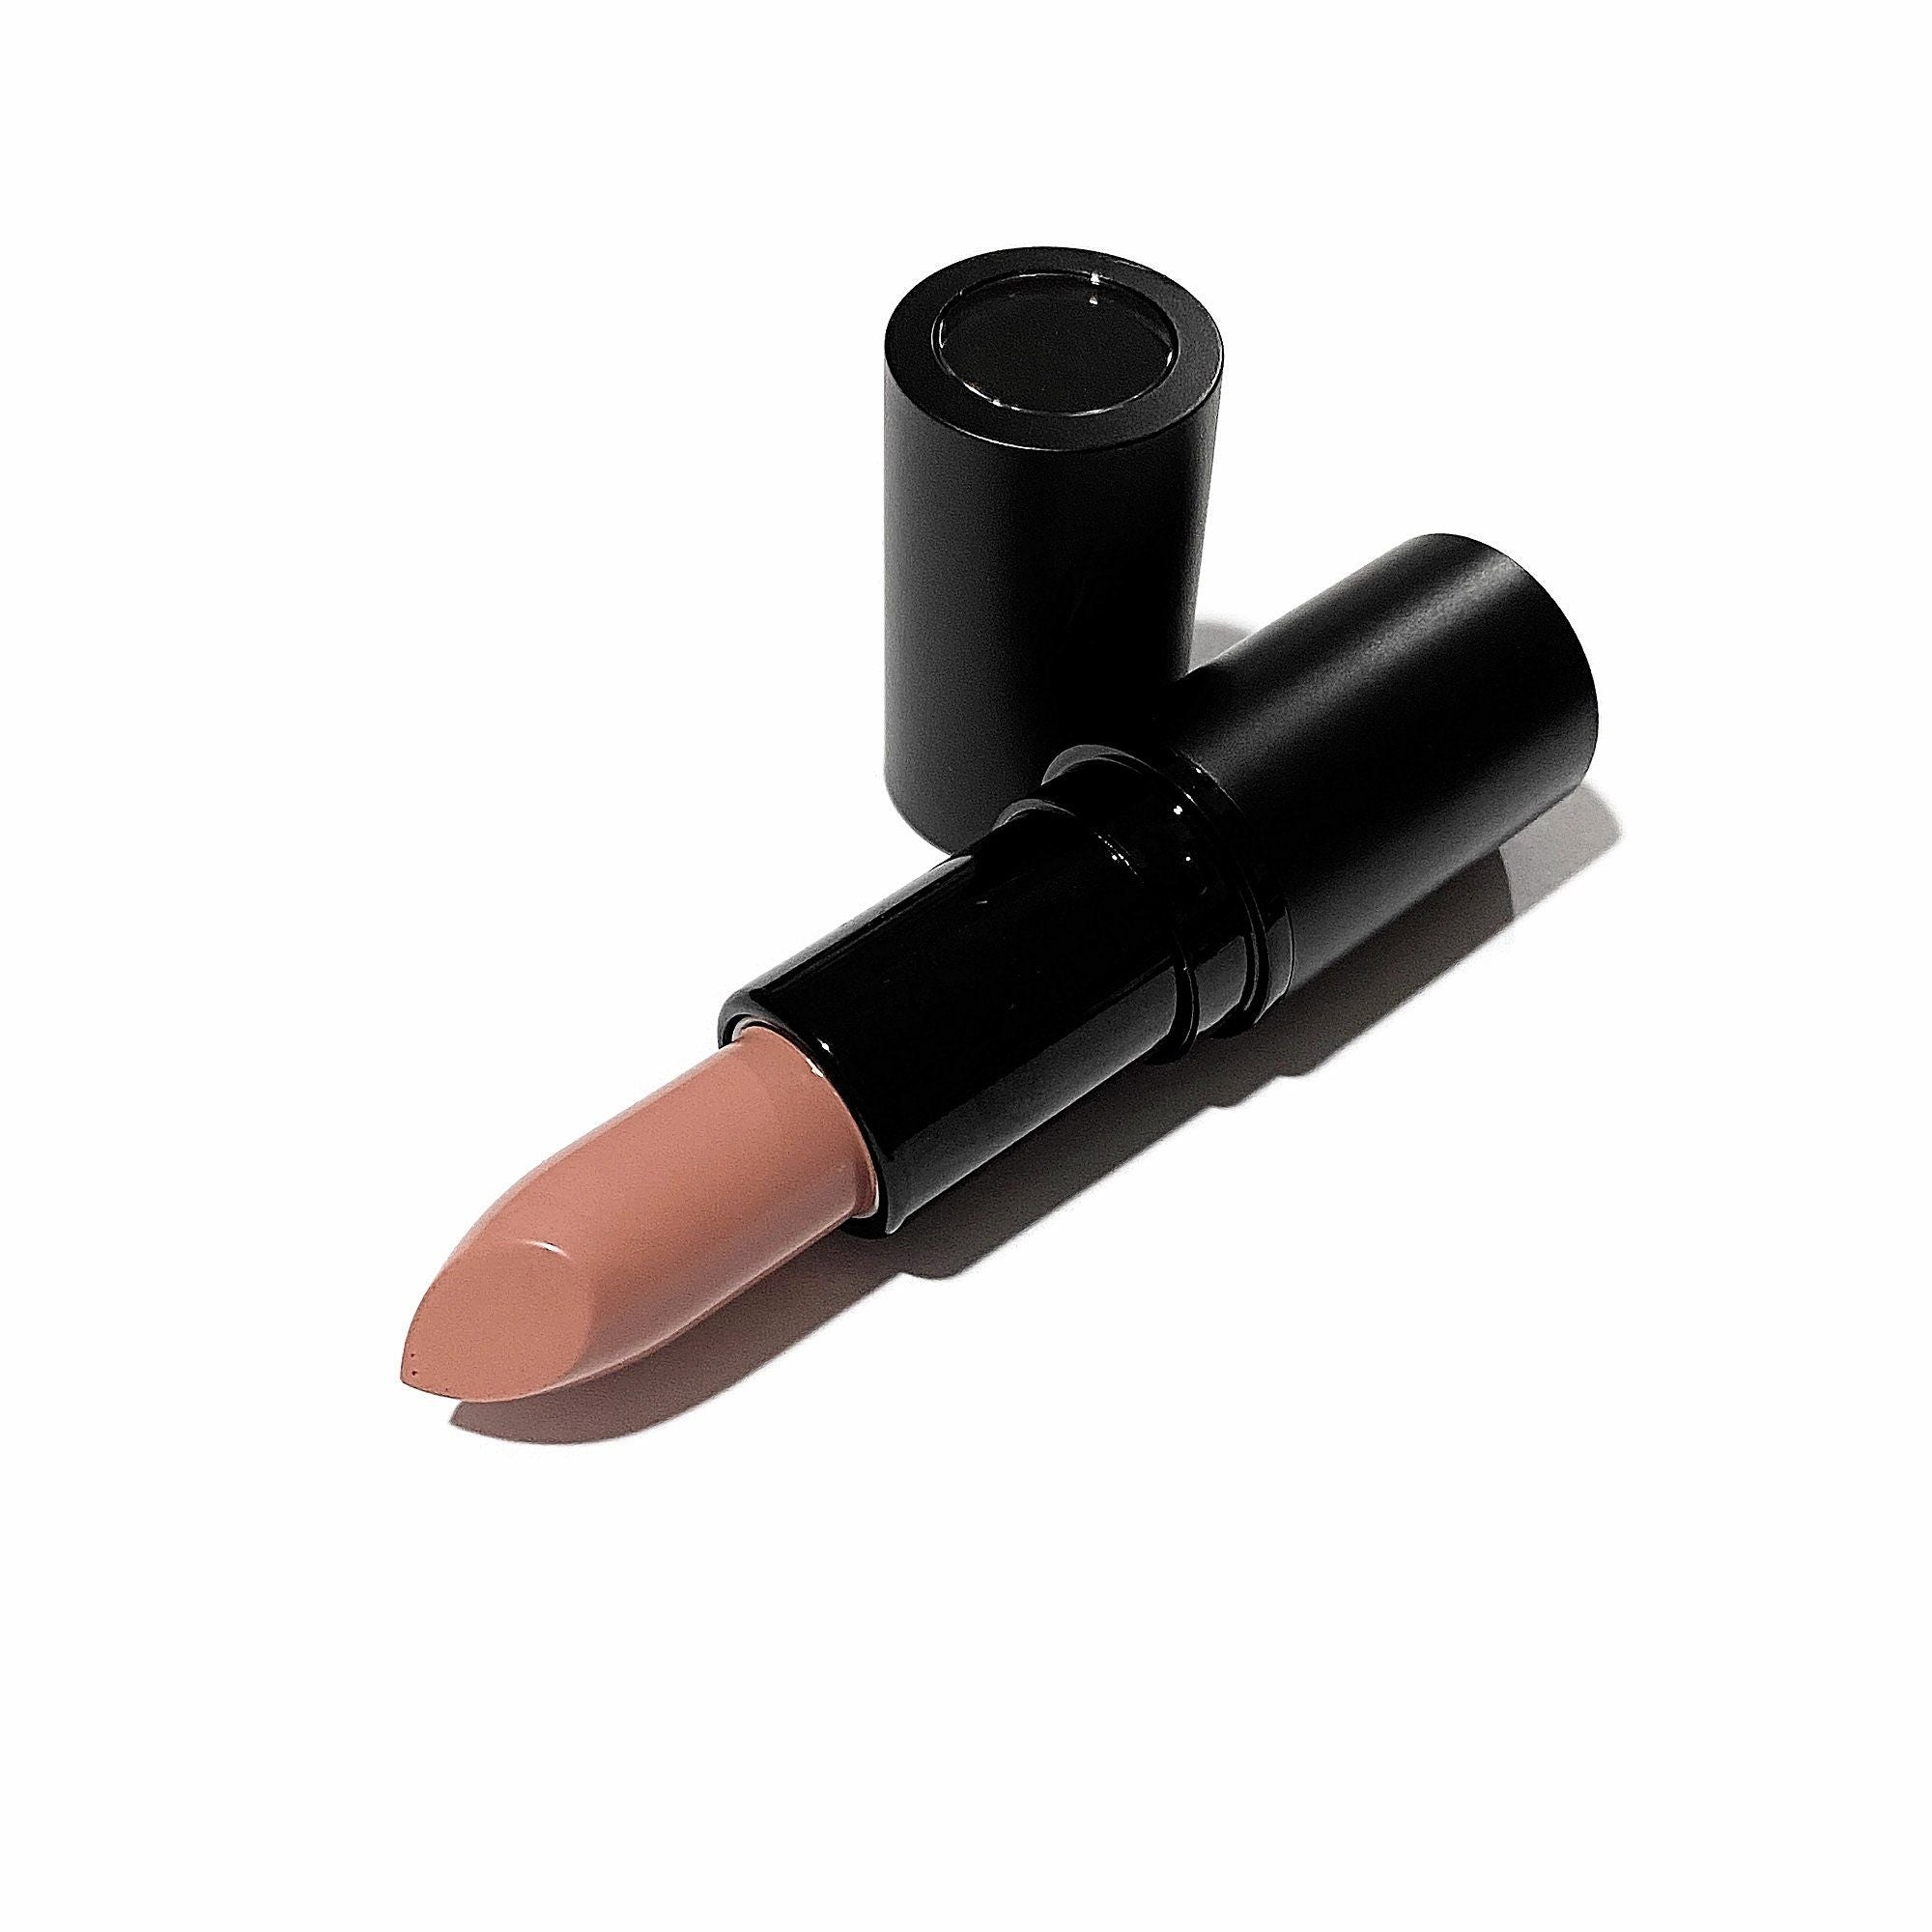 Shea Butter Natural Lipstick - Naked Peach